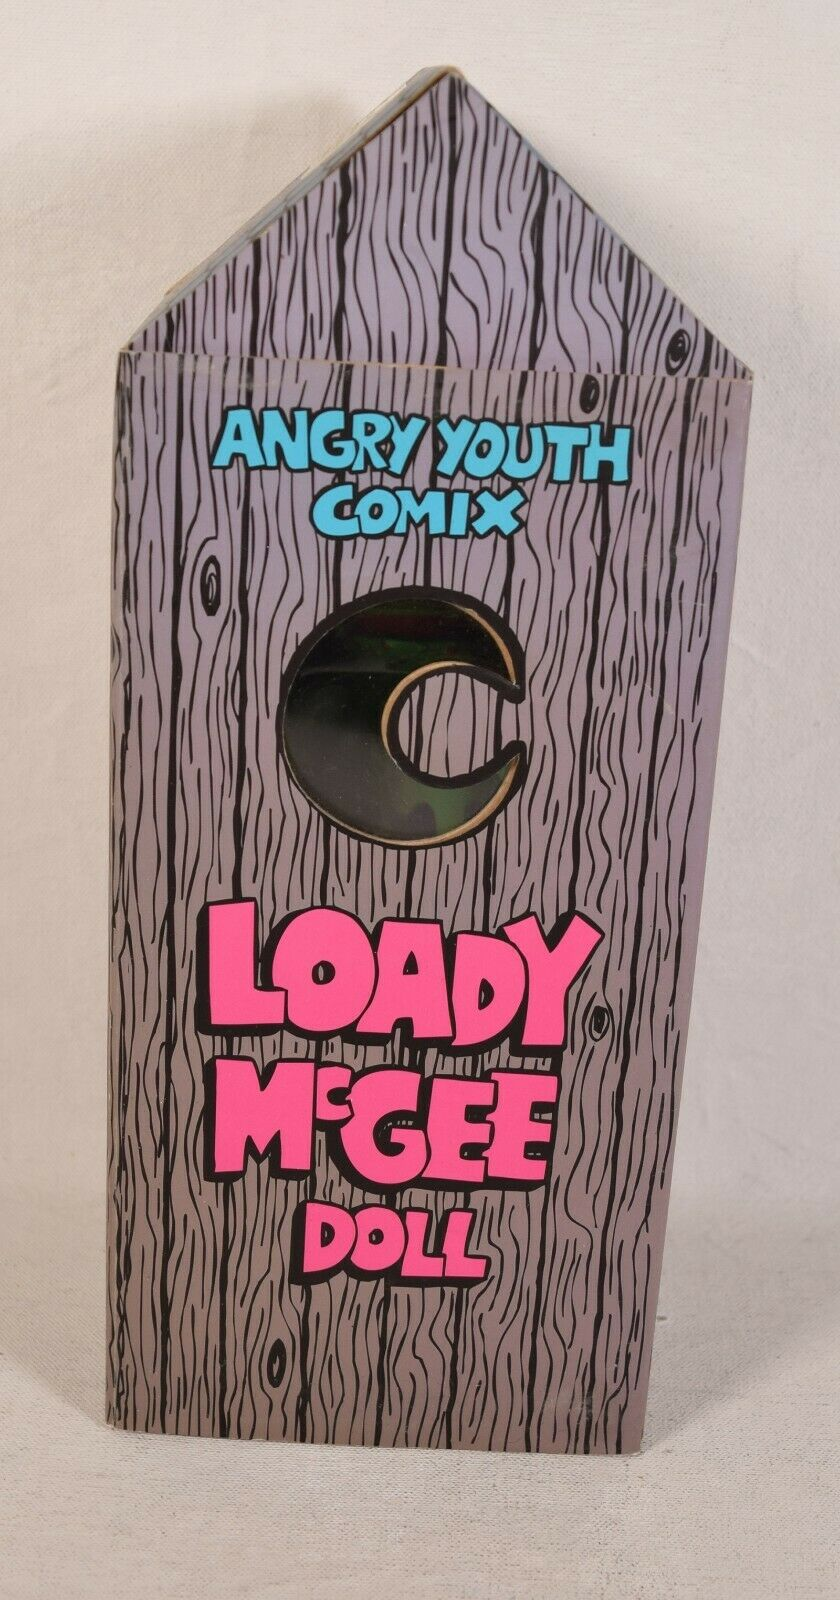 Angry Youth Comix Loady McGree Doll Outhouse Johnny Ryan Vinyl Figure 7.5